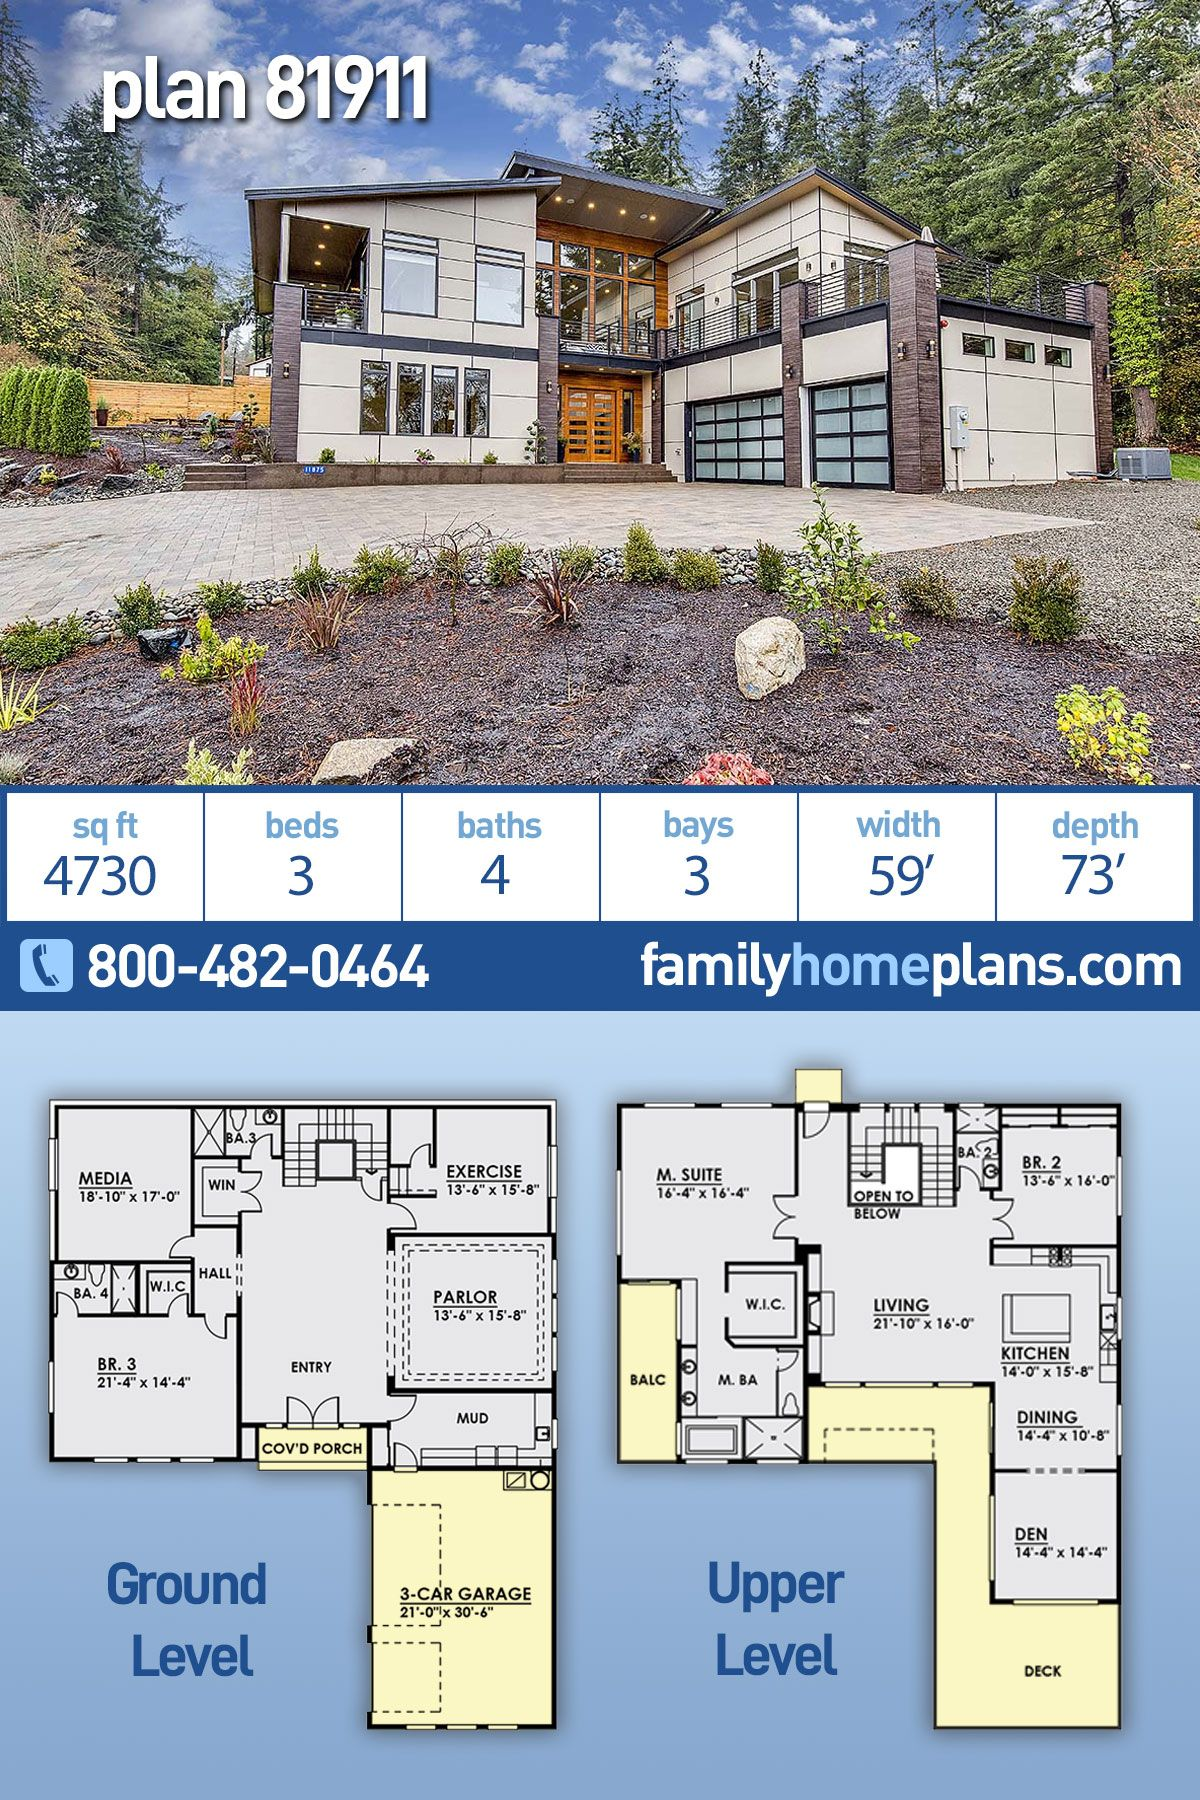 Modern Home Plan With A Great View Has 4730 Sq Ft 3 Beds 4 Baths And A 3 Car Garage Modern Style House Plans House Plans Modern House Plans